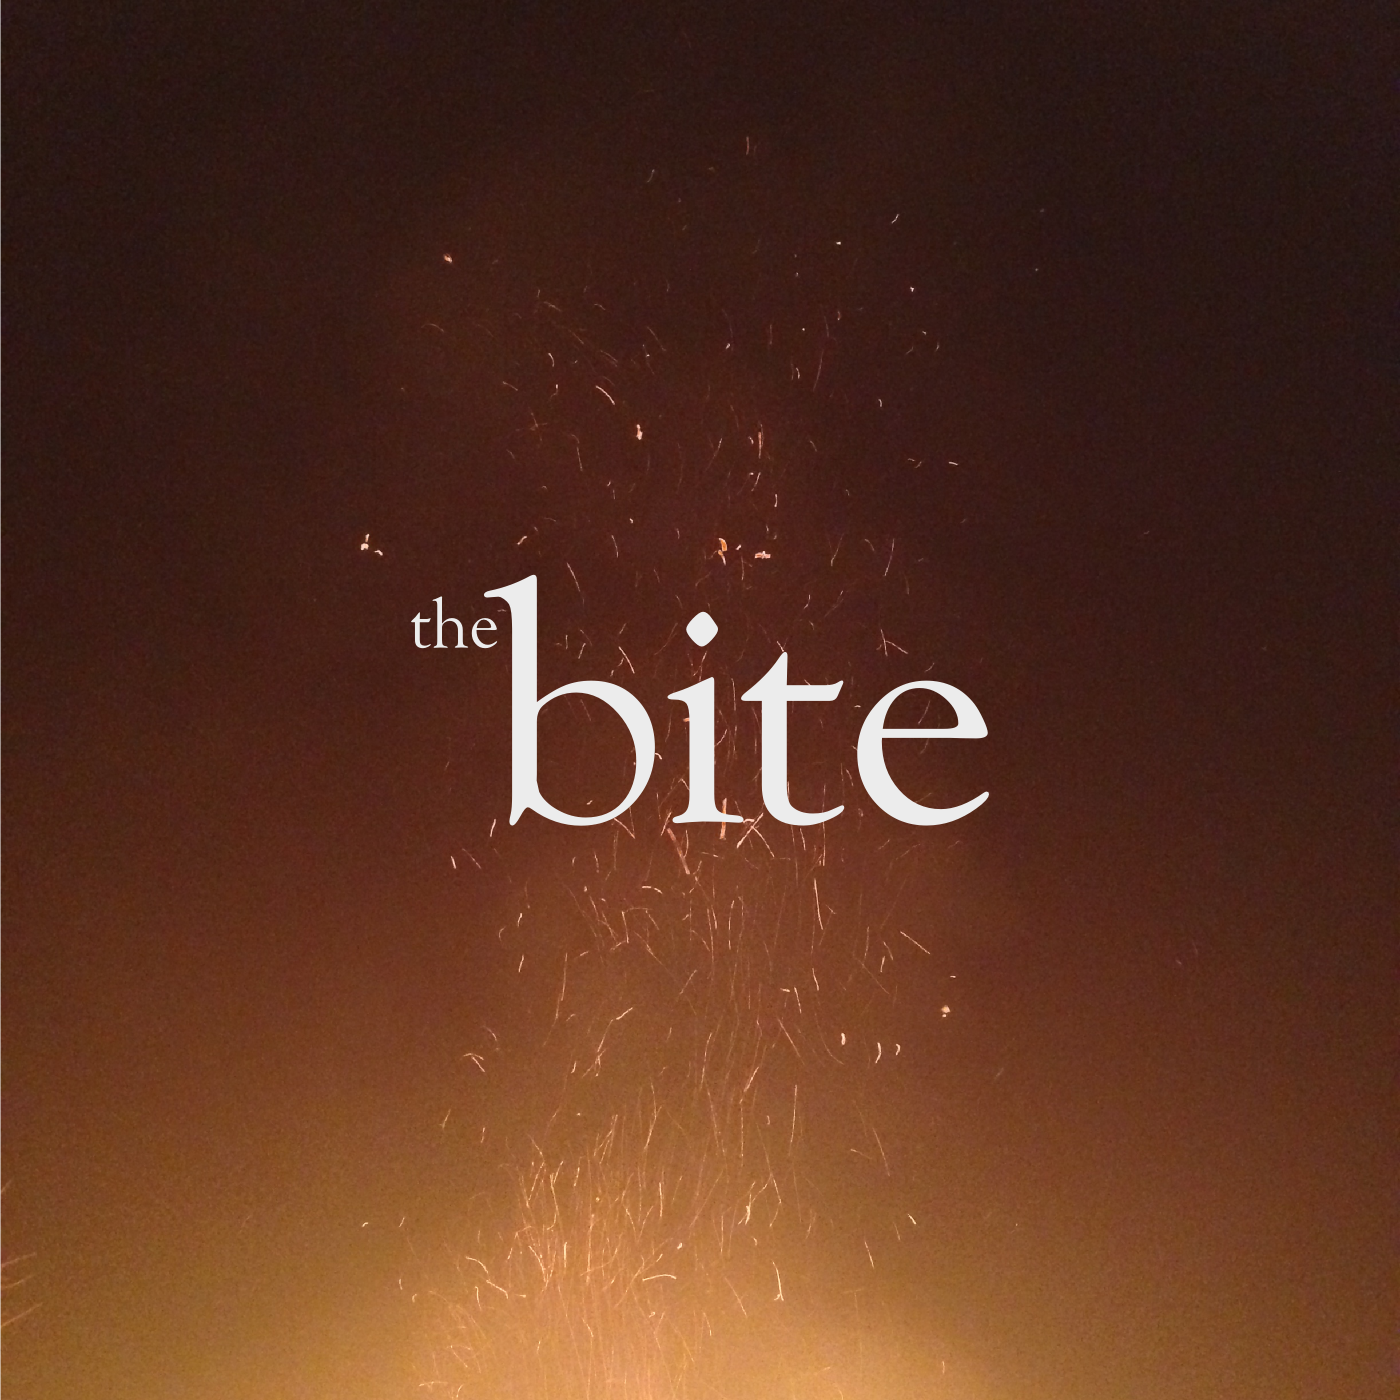 TheBiteCover00.png